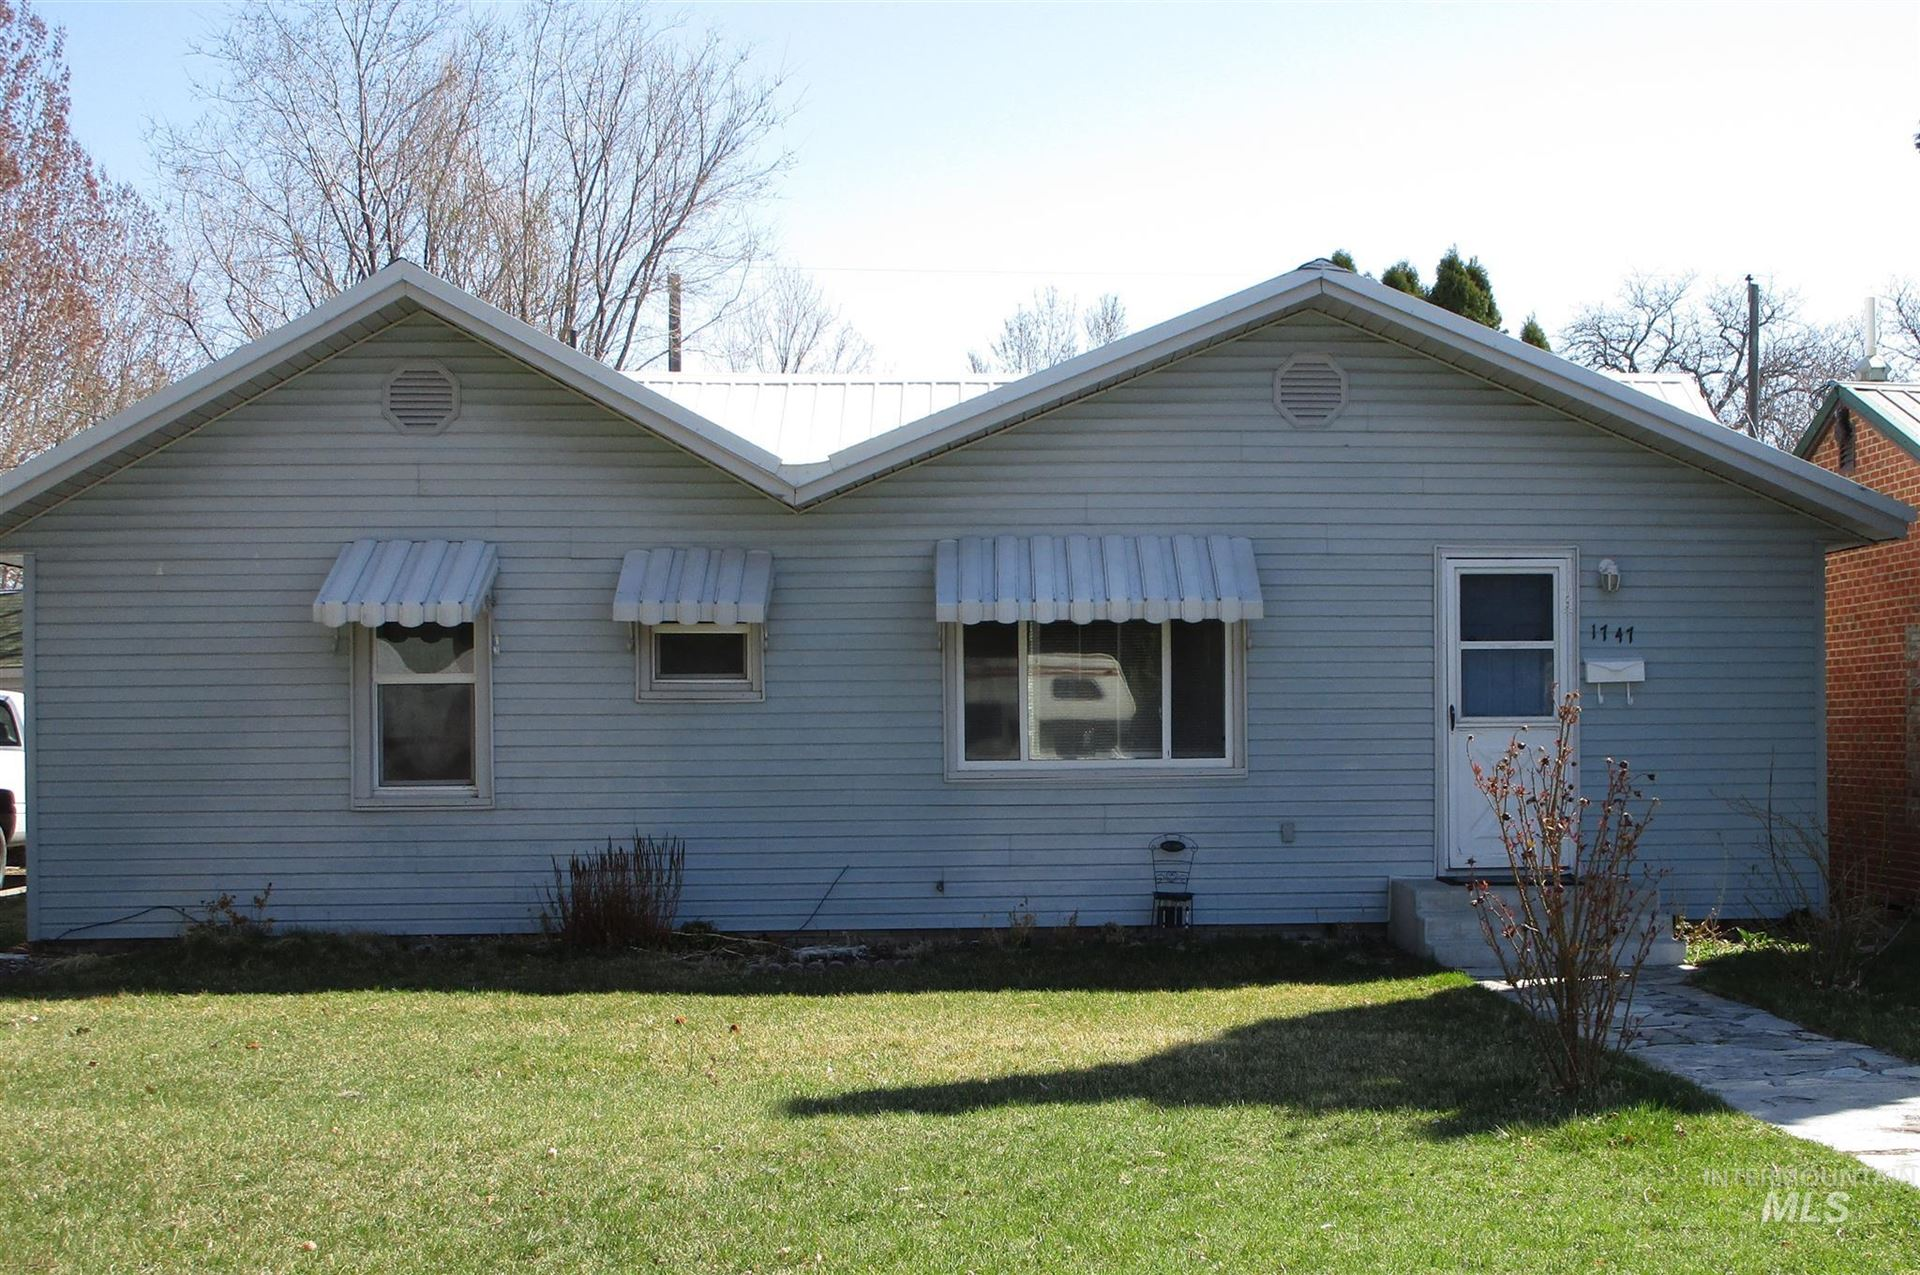 Photo of 1747 Albion Ave., Burley, ID 83318 (MLS # 98798685)